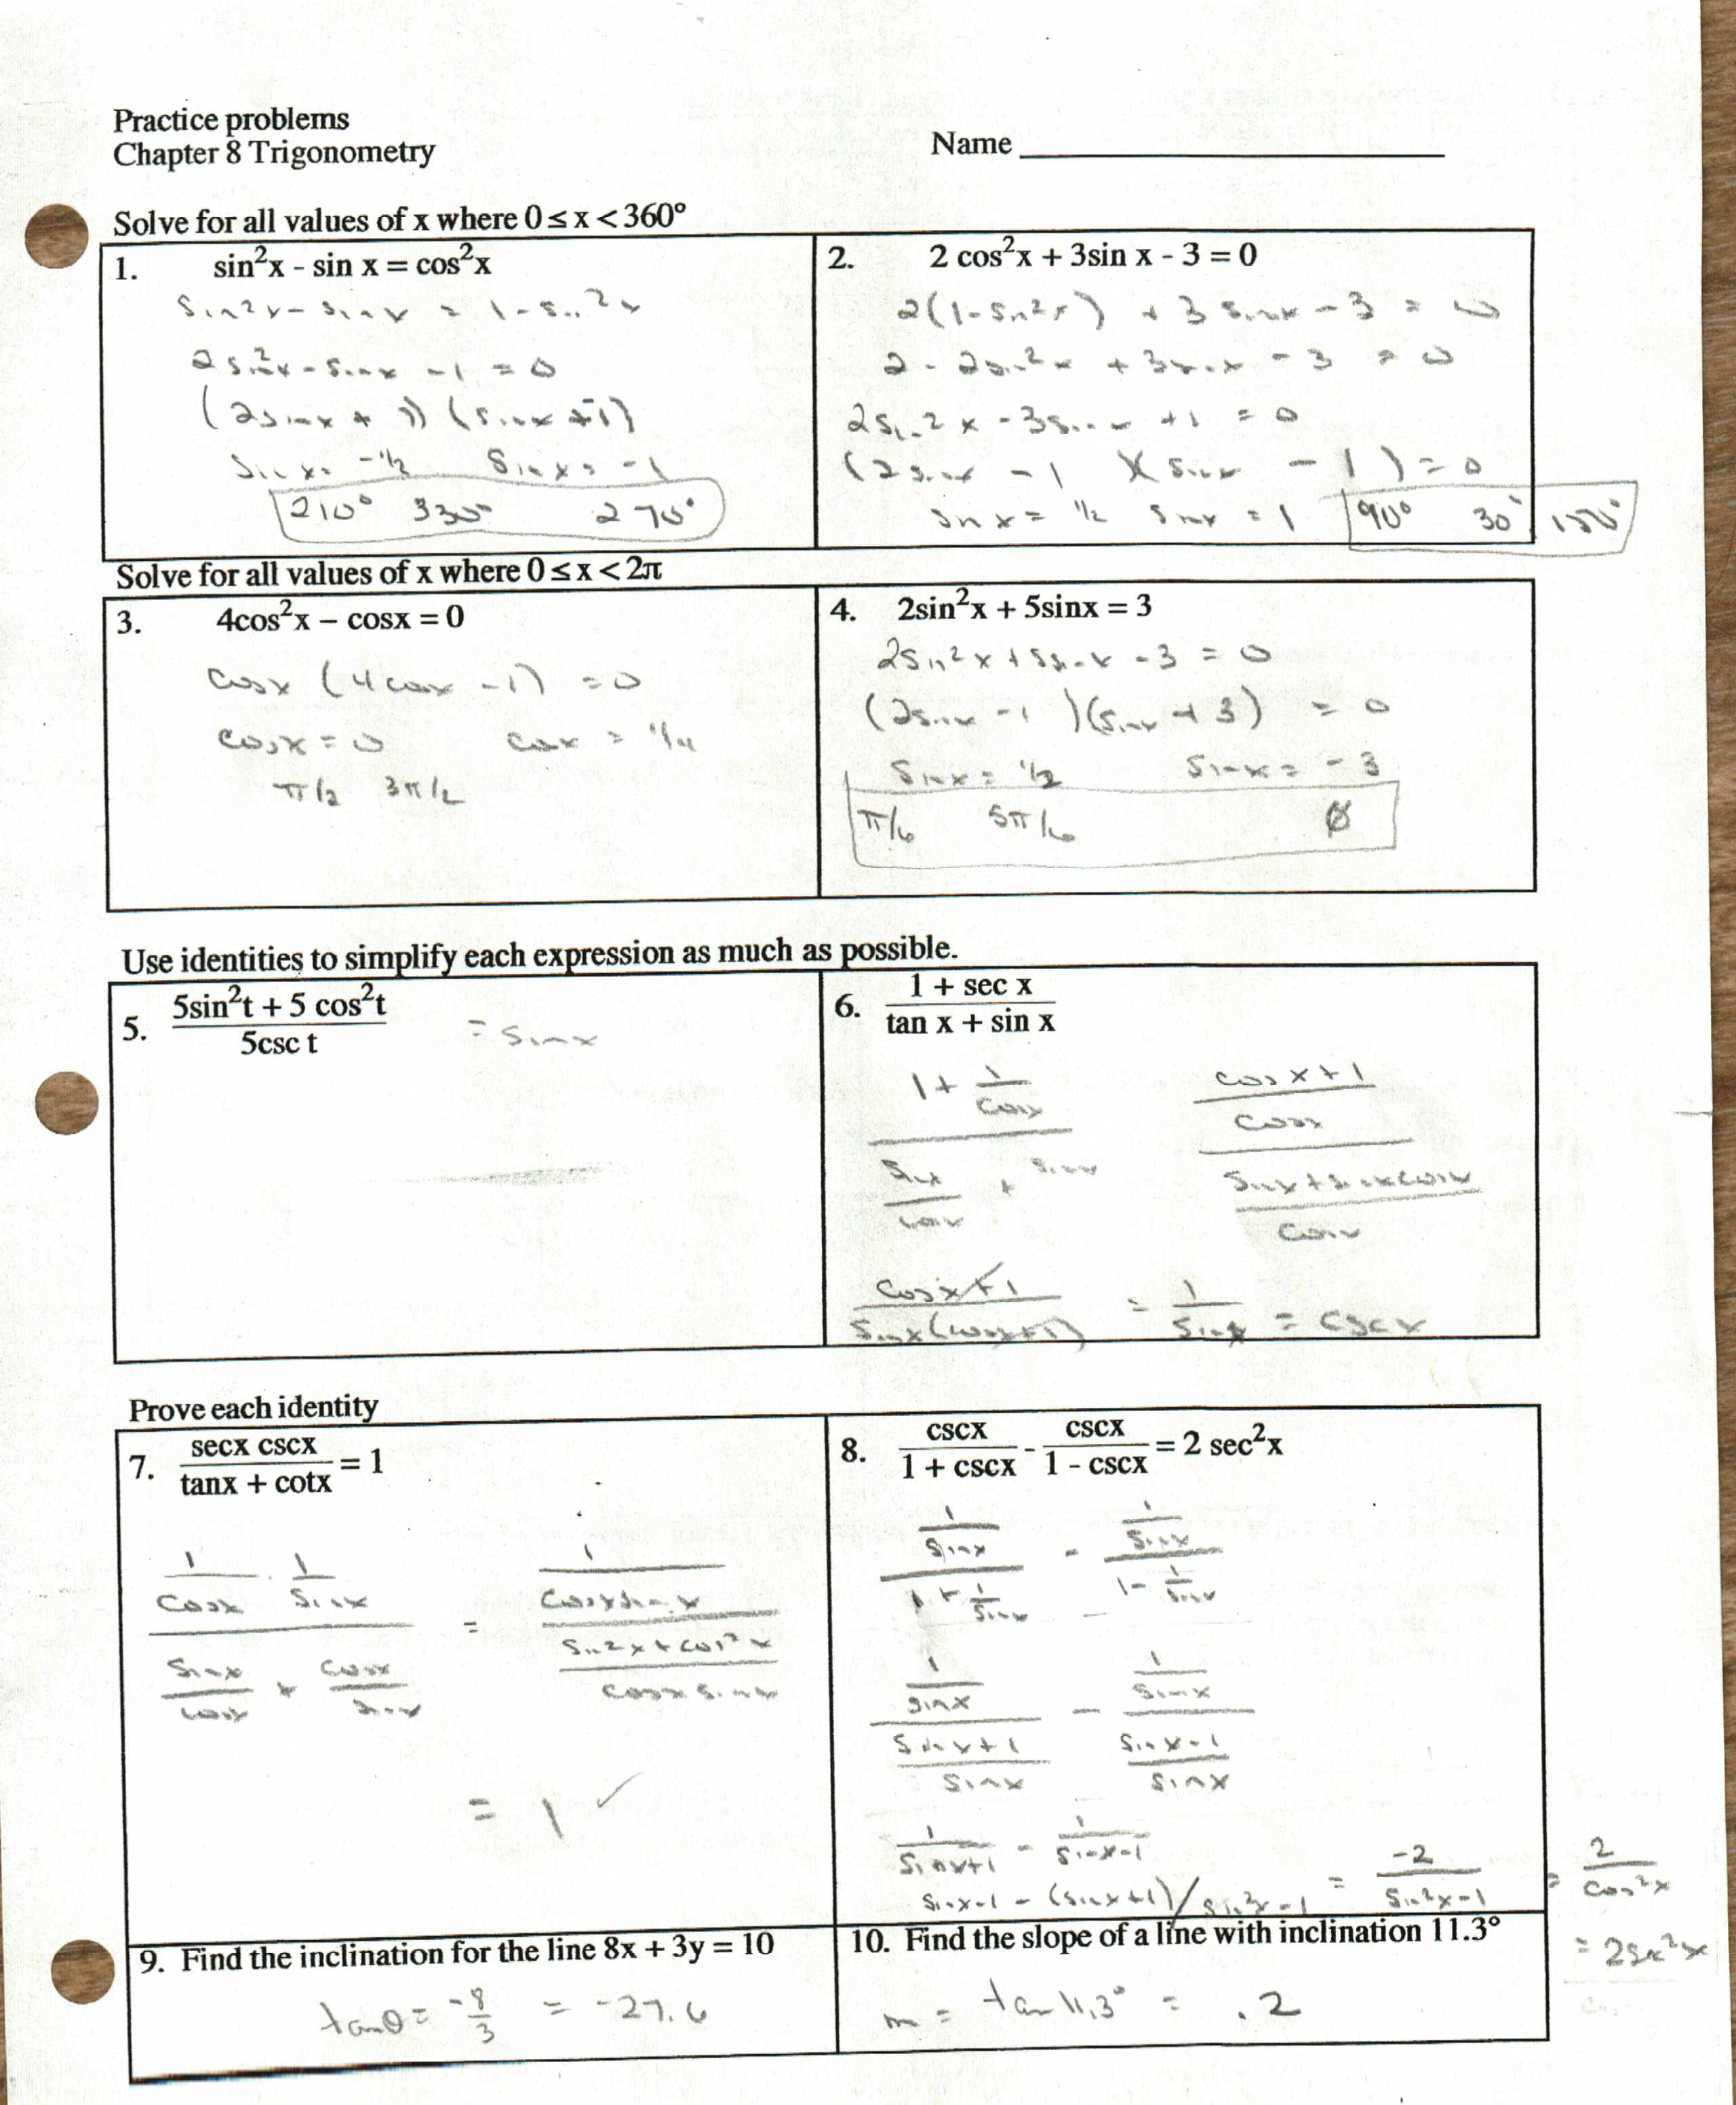 Answers Review Sheet p. 1 and p. 2 NOTE: #1, the answer to sinx=1 is ...